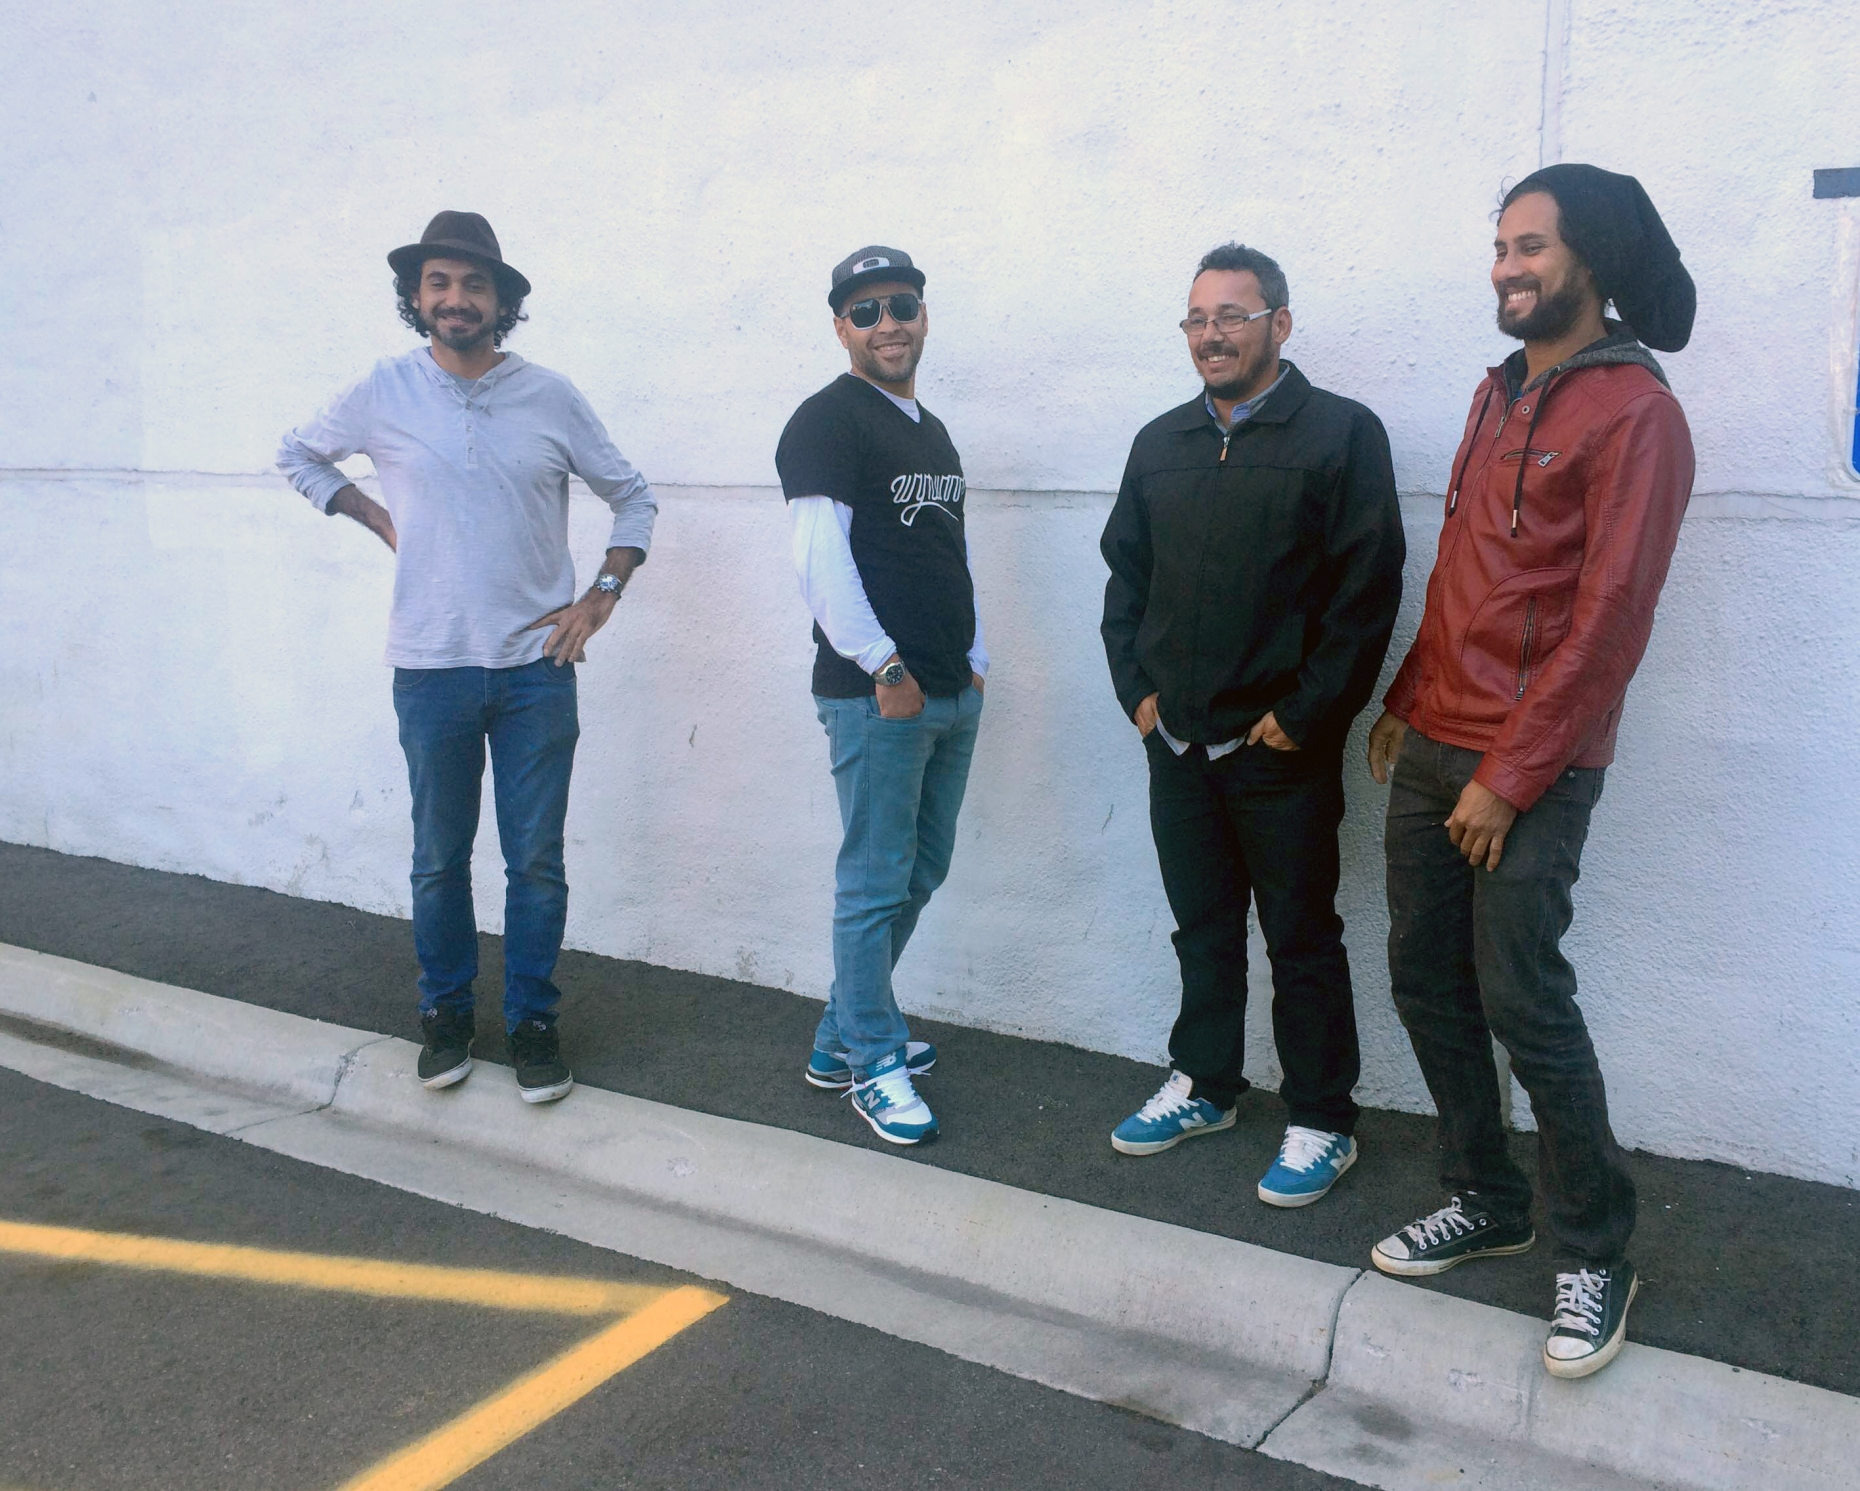 Brazilian street artist Eduardo Kobra (left) and his three team members -- Silvio Cesar de Almeida, Marcos Rafael da Silva and Agnaldo Brito Pereira -- at the site of upcoming mural on Fifth Street and Hennepin Avenue.